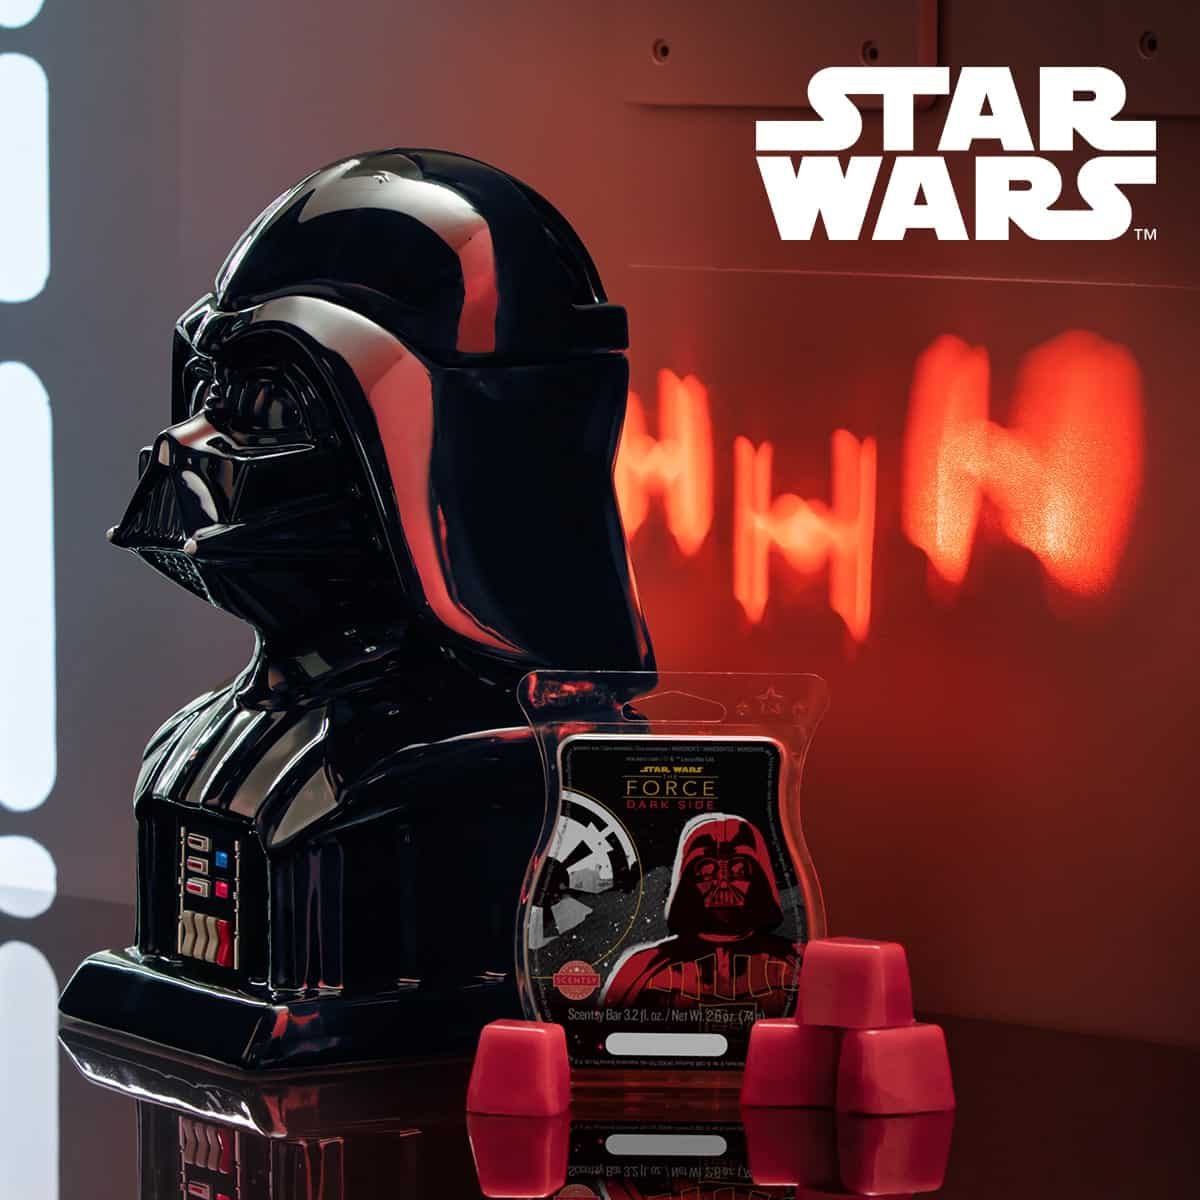 DARTH VADER SCENTSY WARMER STAR WARS